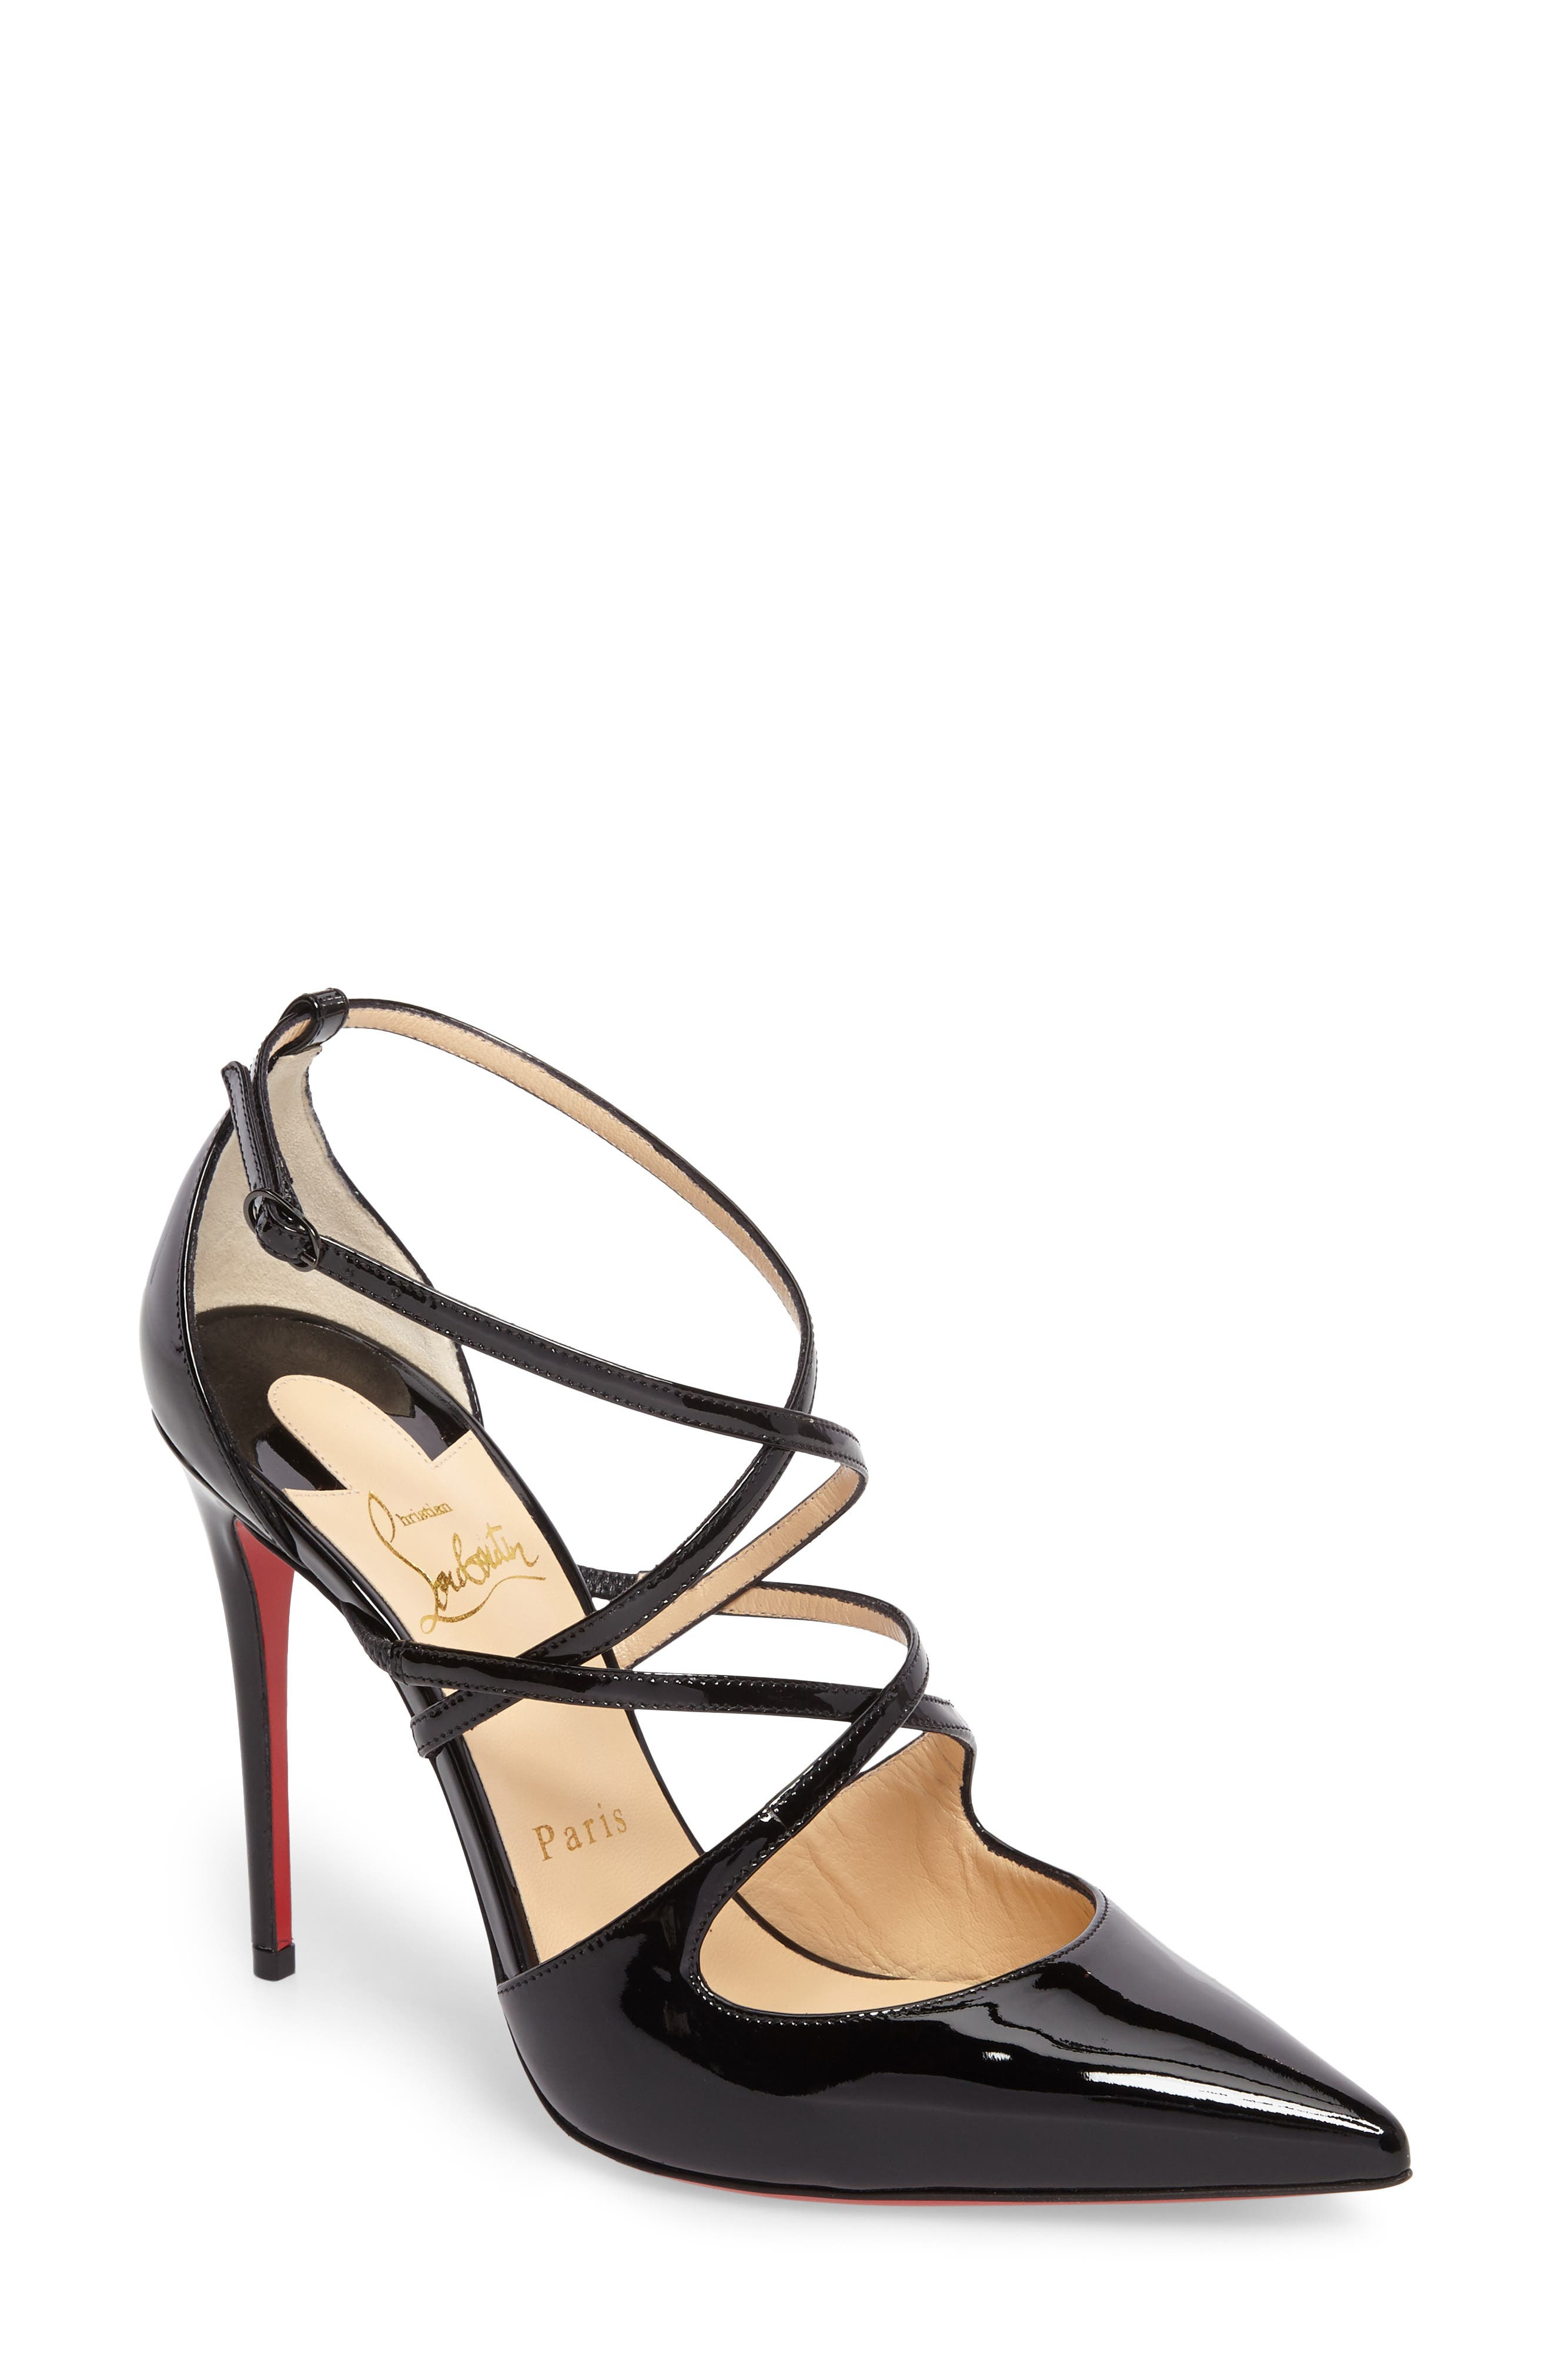 CHRISTIAN LOUBOUTIN Crossfliketa Pump, Main, color, 001